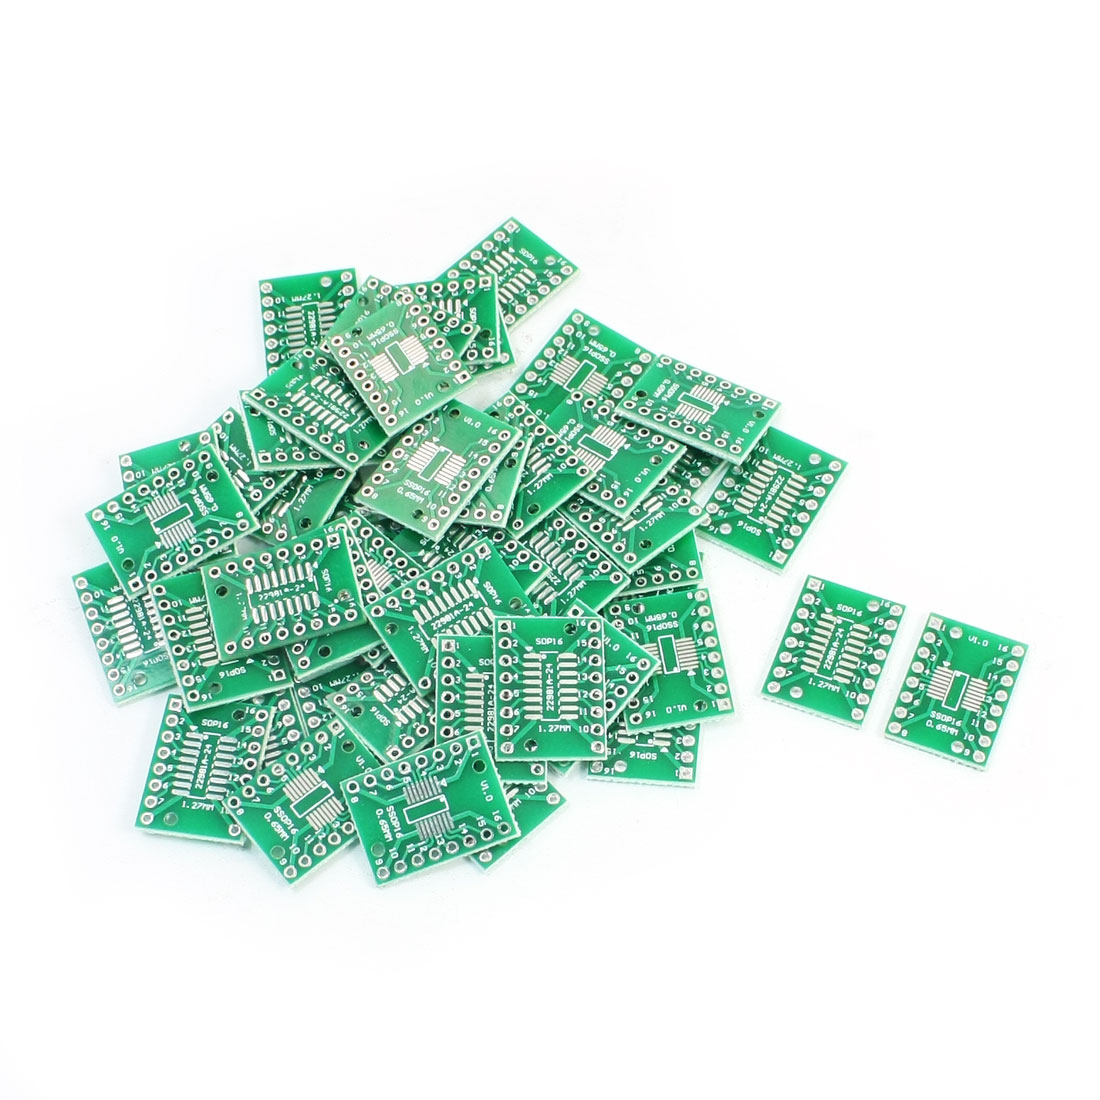 50PCS SMD SOP16 SSOP16 TSSOP16 to DIP16 0.65/1.27mm PCB Adapter Plate